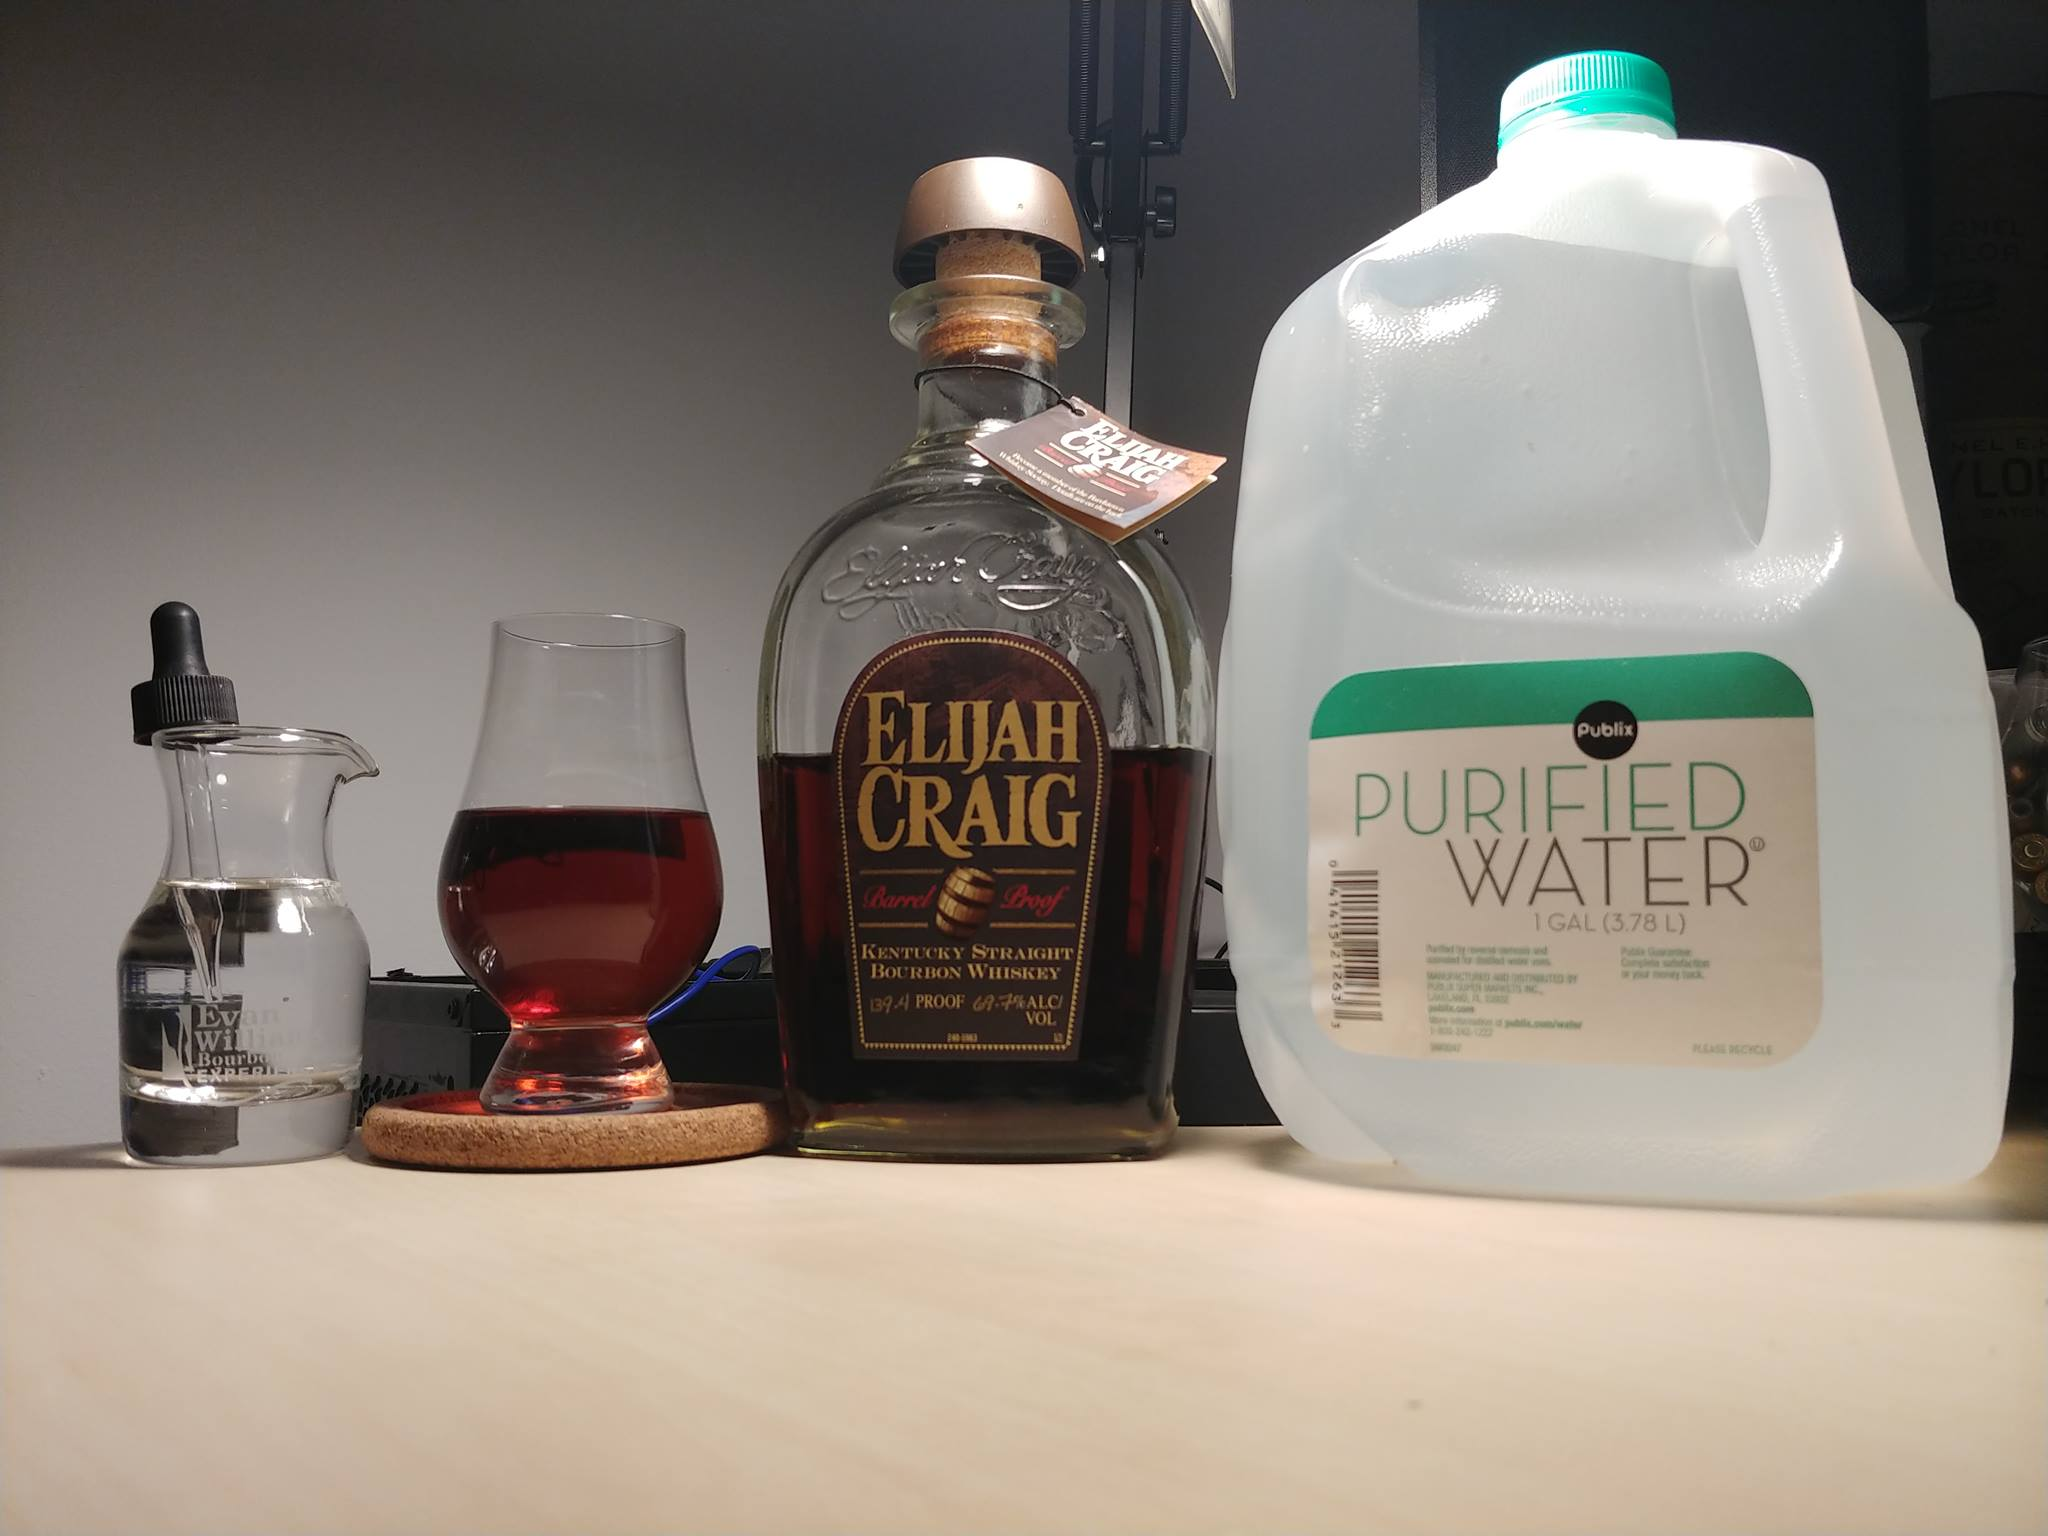 ~3 oz pour, rested neat in a glencairn for 20 minutes. - Color: 1.7 (https://malt-review.com/wp-content/uploads/2015/09/Colour-bar-Big.jpg)~3 oz pour, rested neat in a glencairn for 20 minutes.Legs: thin halo yields to tiny droplets that never become legsNose: Butterscotch waffles, dark stone fruits like red cherries, pear skin, strawberries, some ethanol under all of these strong flavors, toasted oak, maple syrup, honey, dark chocolate (~85% Cacao). Very complex and a long going on here with the complimentary notes.Palate: Lots of heavy oak on the front, somewhat bitter, there is a sweetness as well, but it doesn't mingle perfectly. Moves into a cherry/baking spice mid-palate, then the ethanol comes in, fast and dry, leading into the finish.Mouthfeel: Medium, but very chewyFinish: Long, with 8